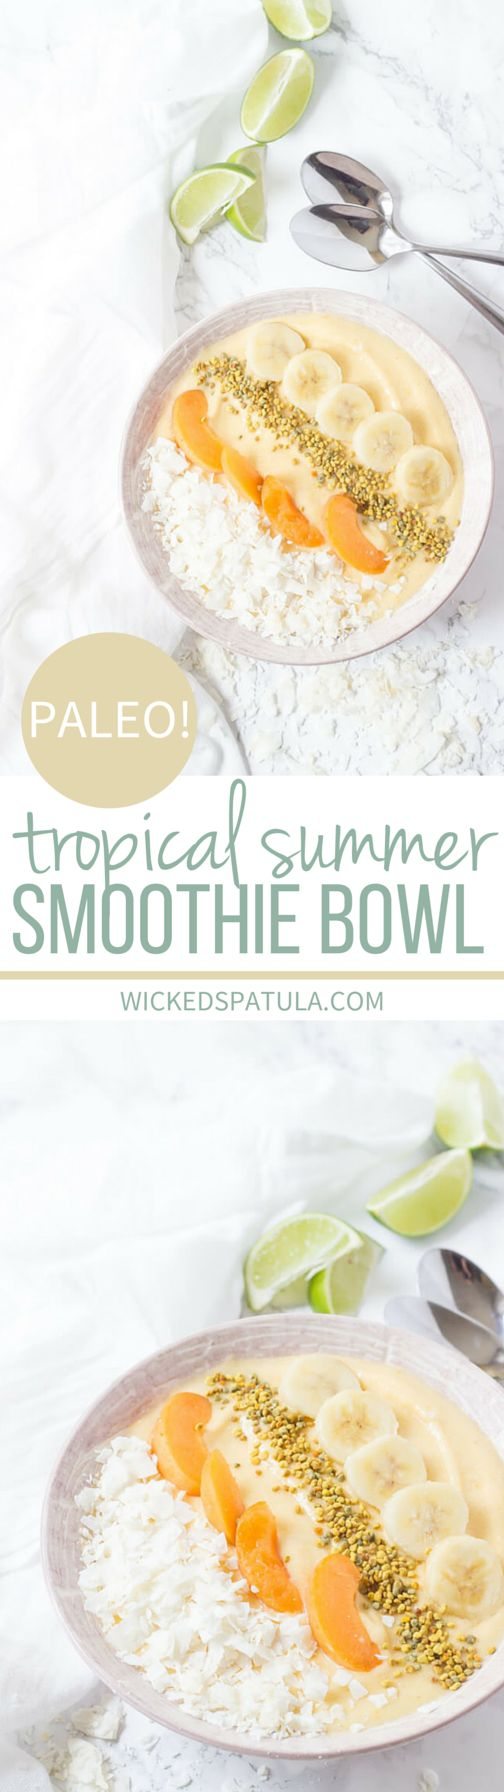 Tropical Summer Smoothie Bowl